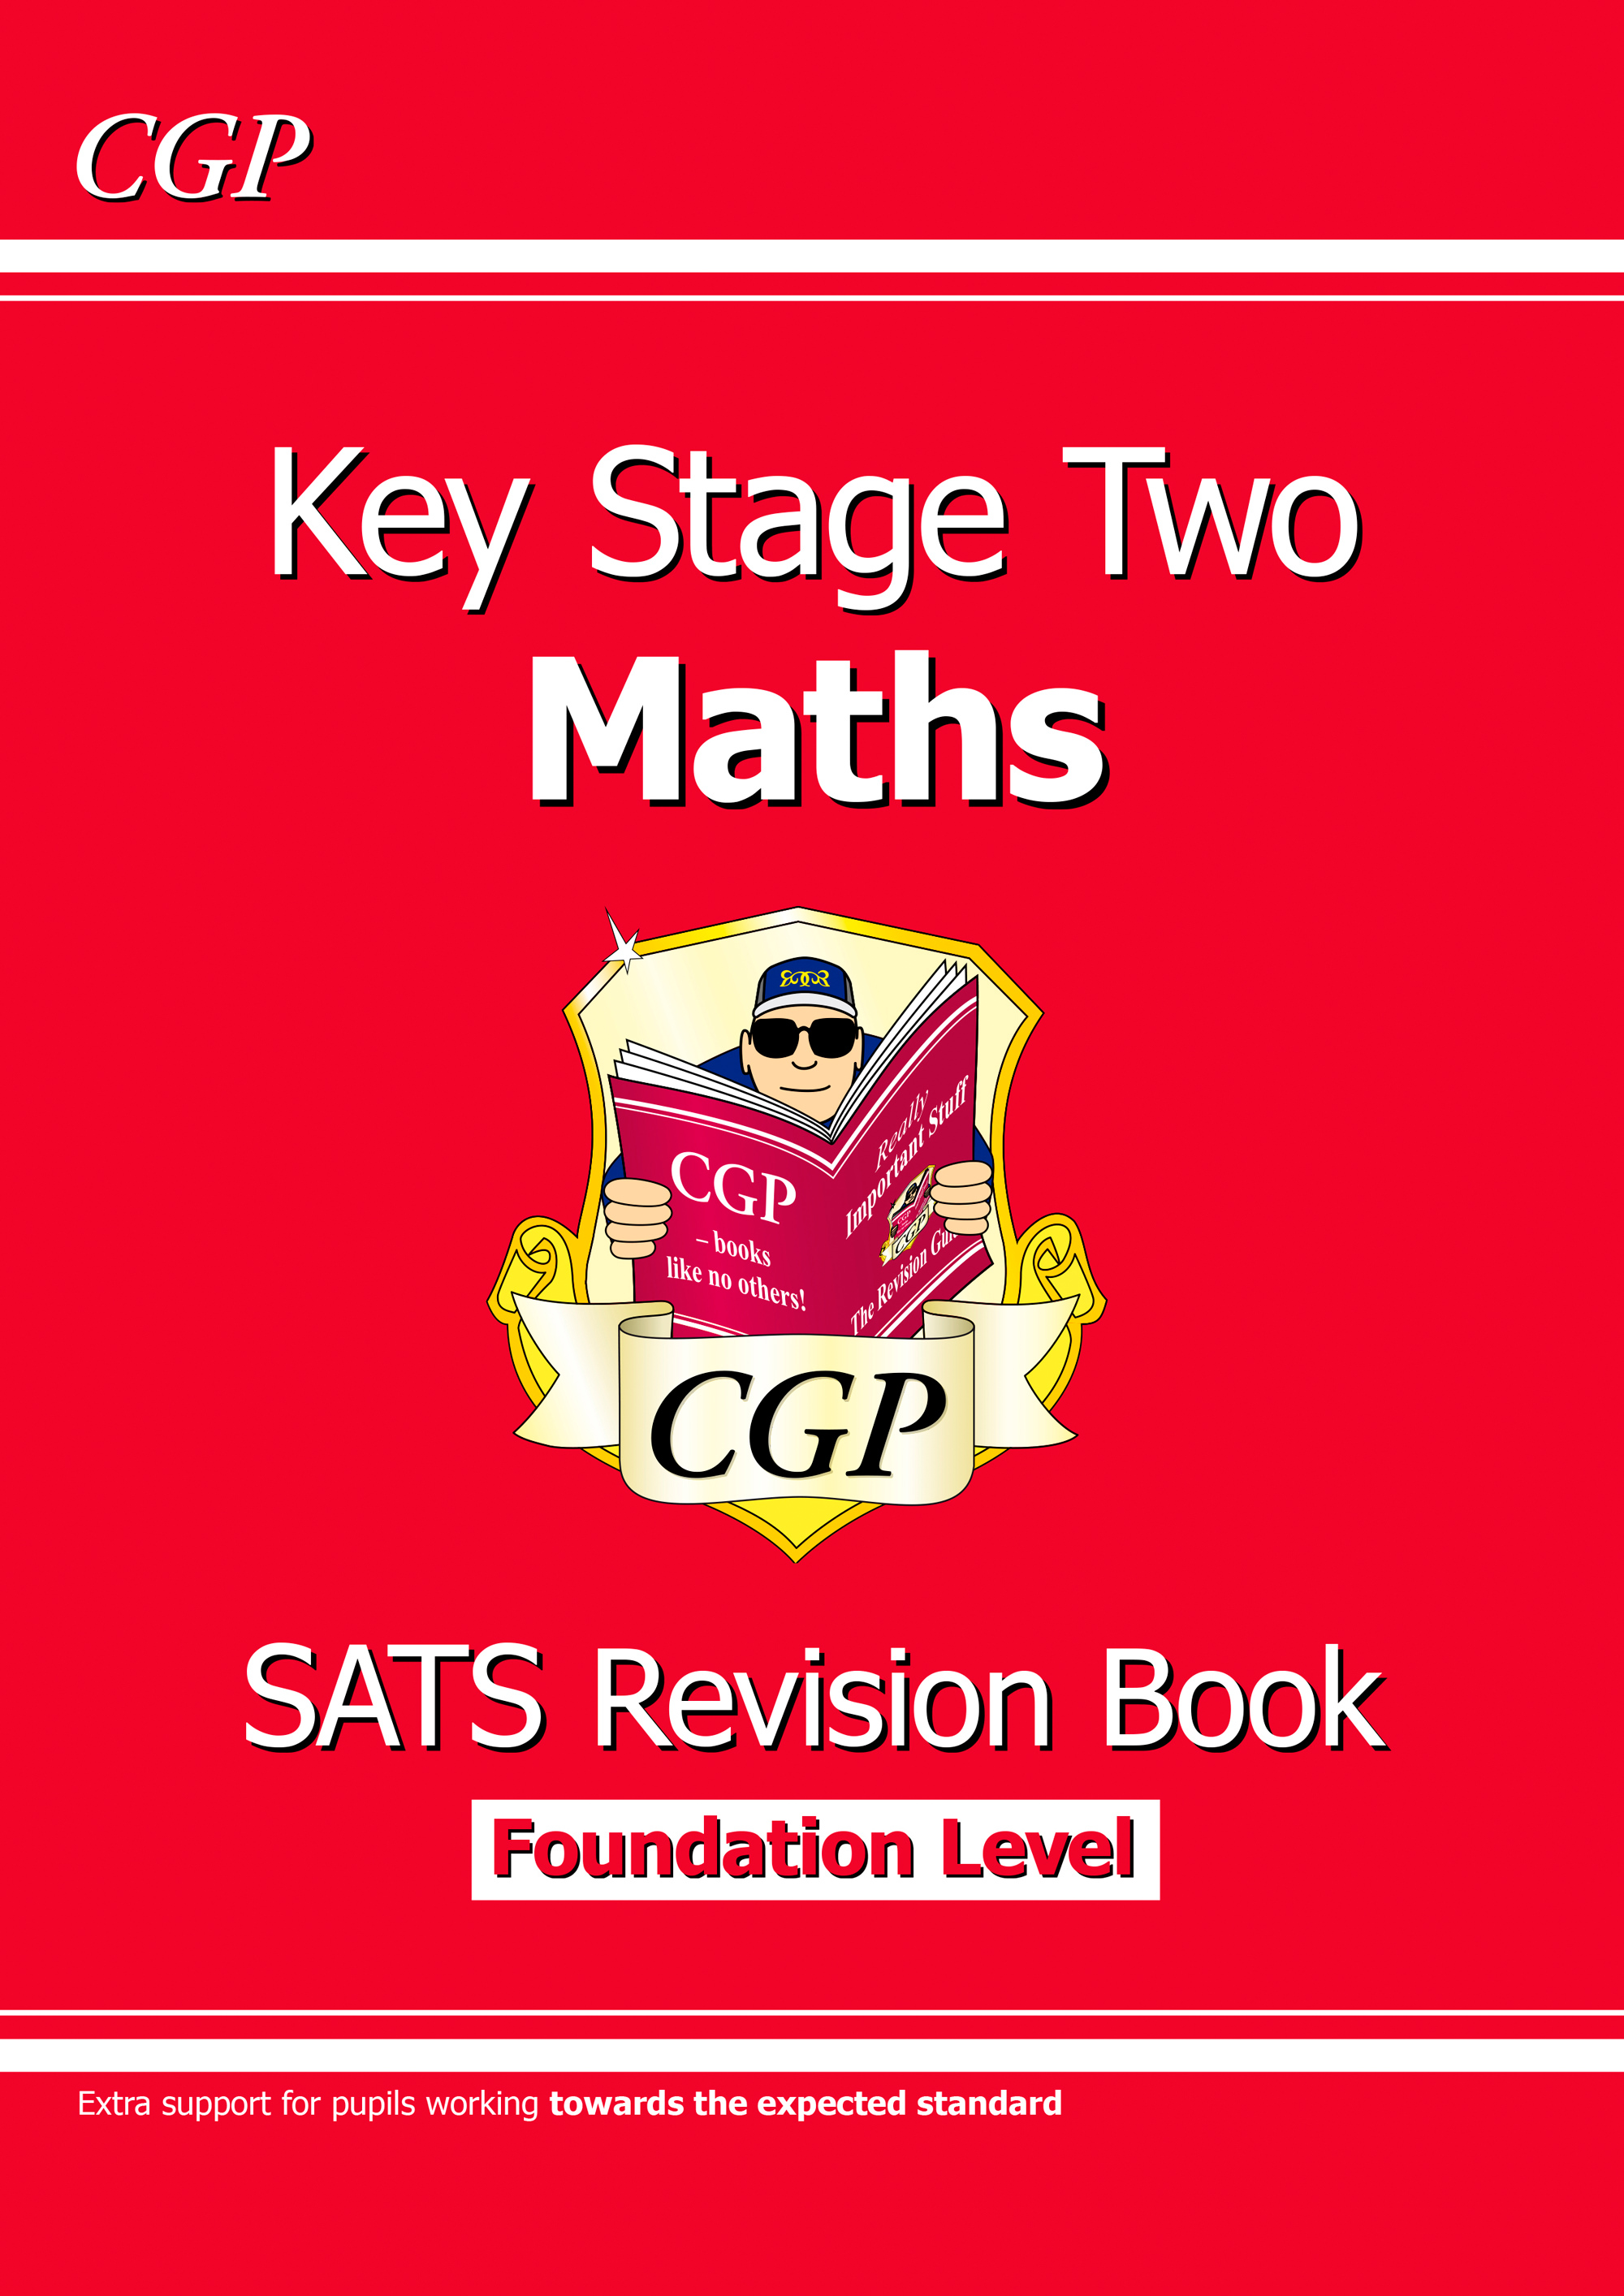 MLBR22DK - New KS2 Maths Targeted SATs Revision Book - Foundation Level (for tests in 2018 and beyon